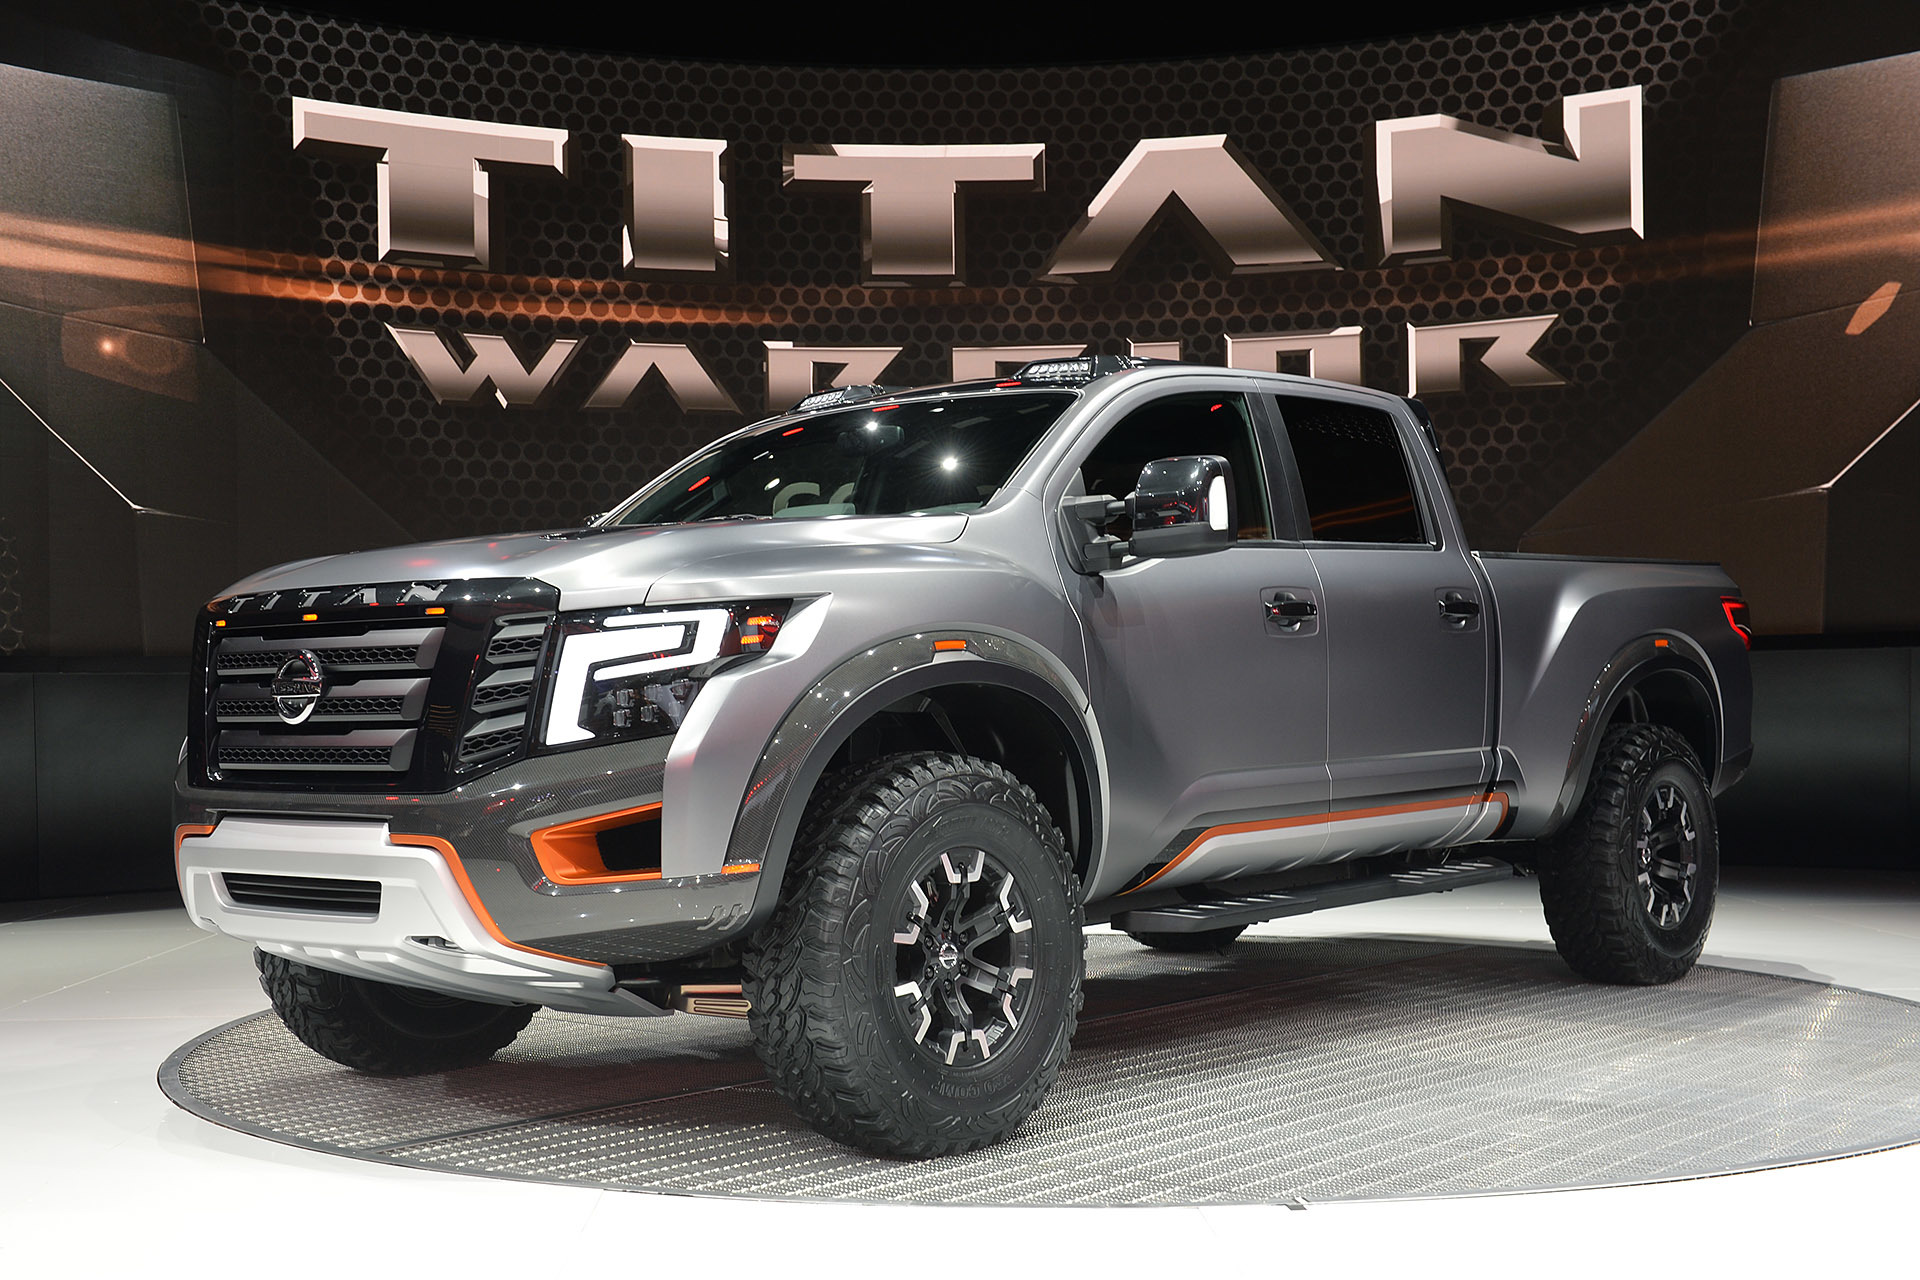 nissan titan warrior concept 2016 dark cars wallpapers. Black Bedroom Furniture Sets. Home Design Ideas